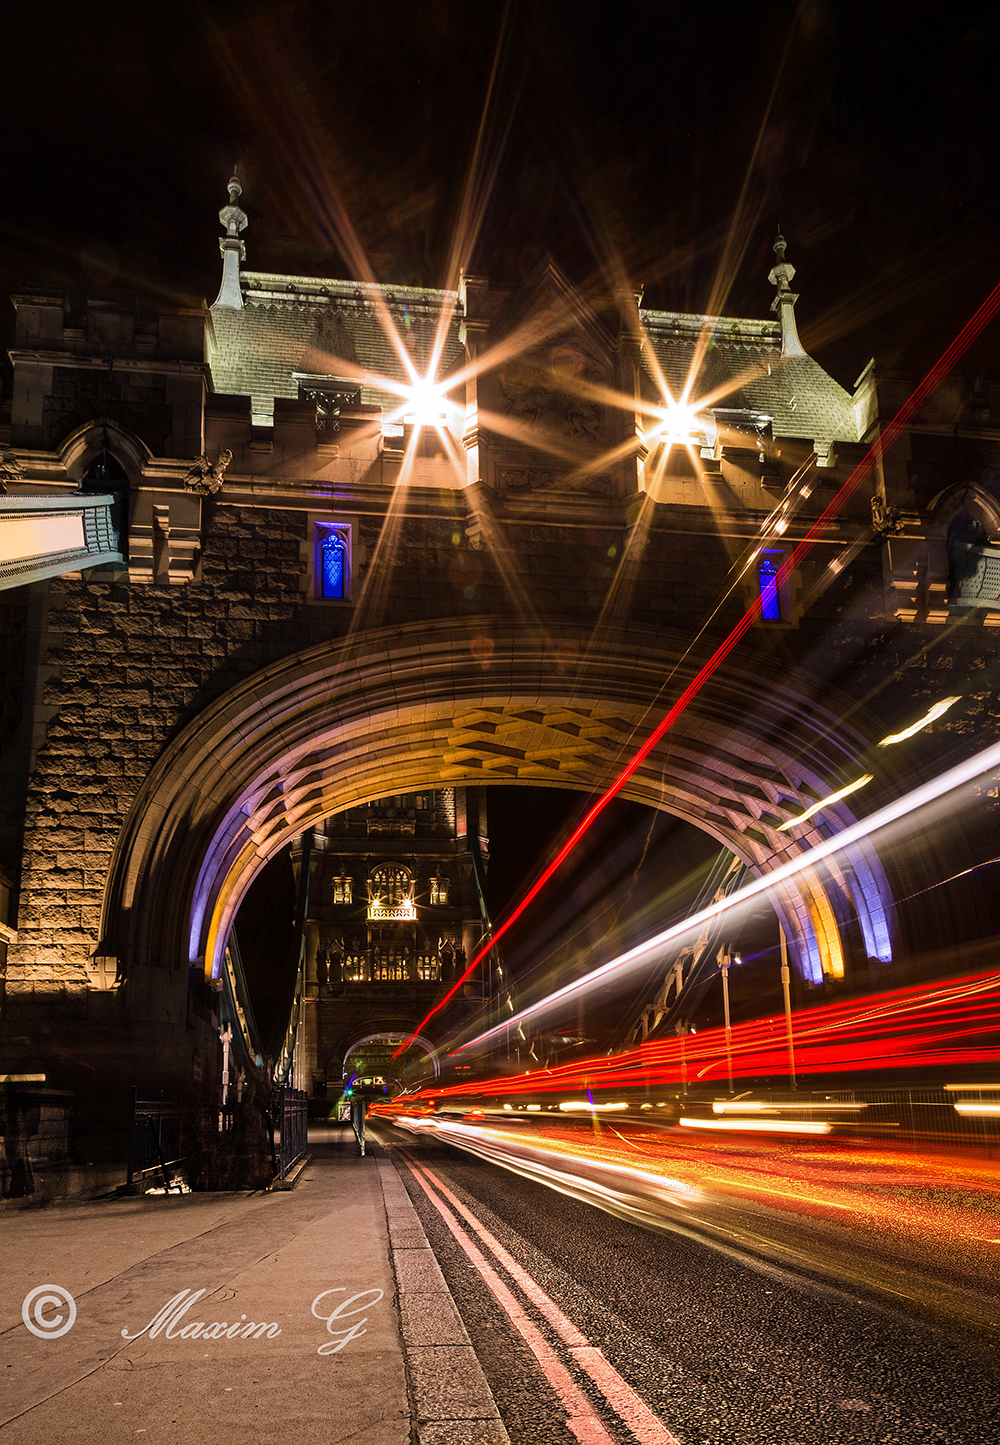 #tower_bridge #canon #longexposure #traffic #art